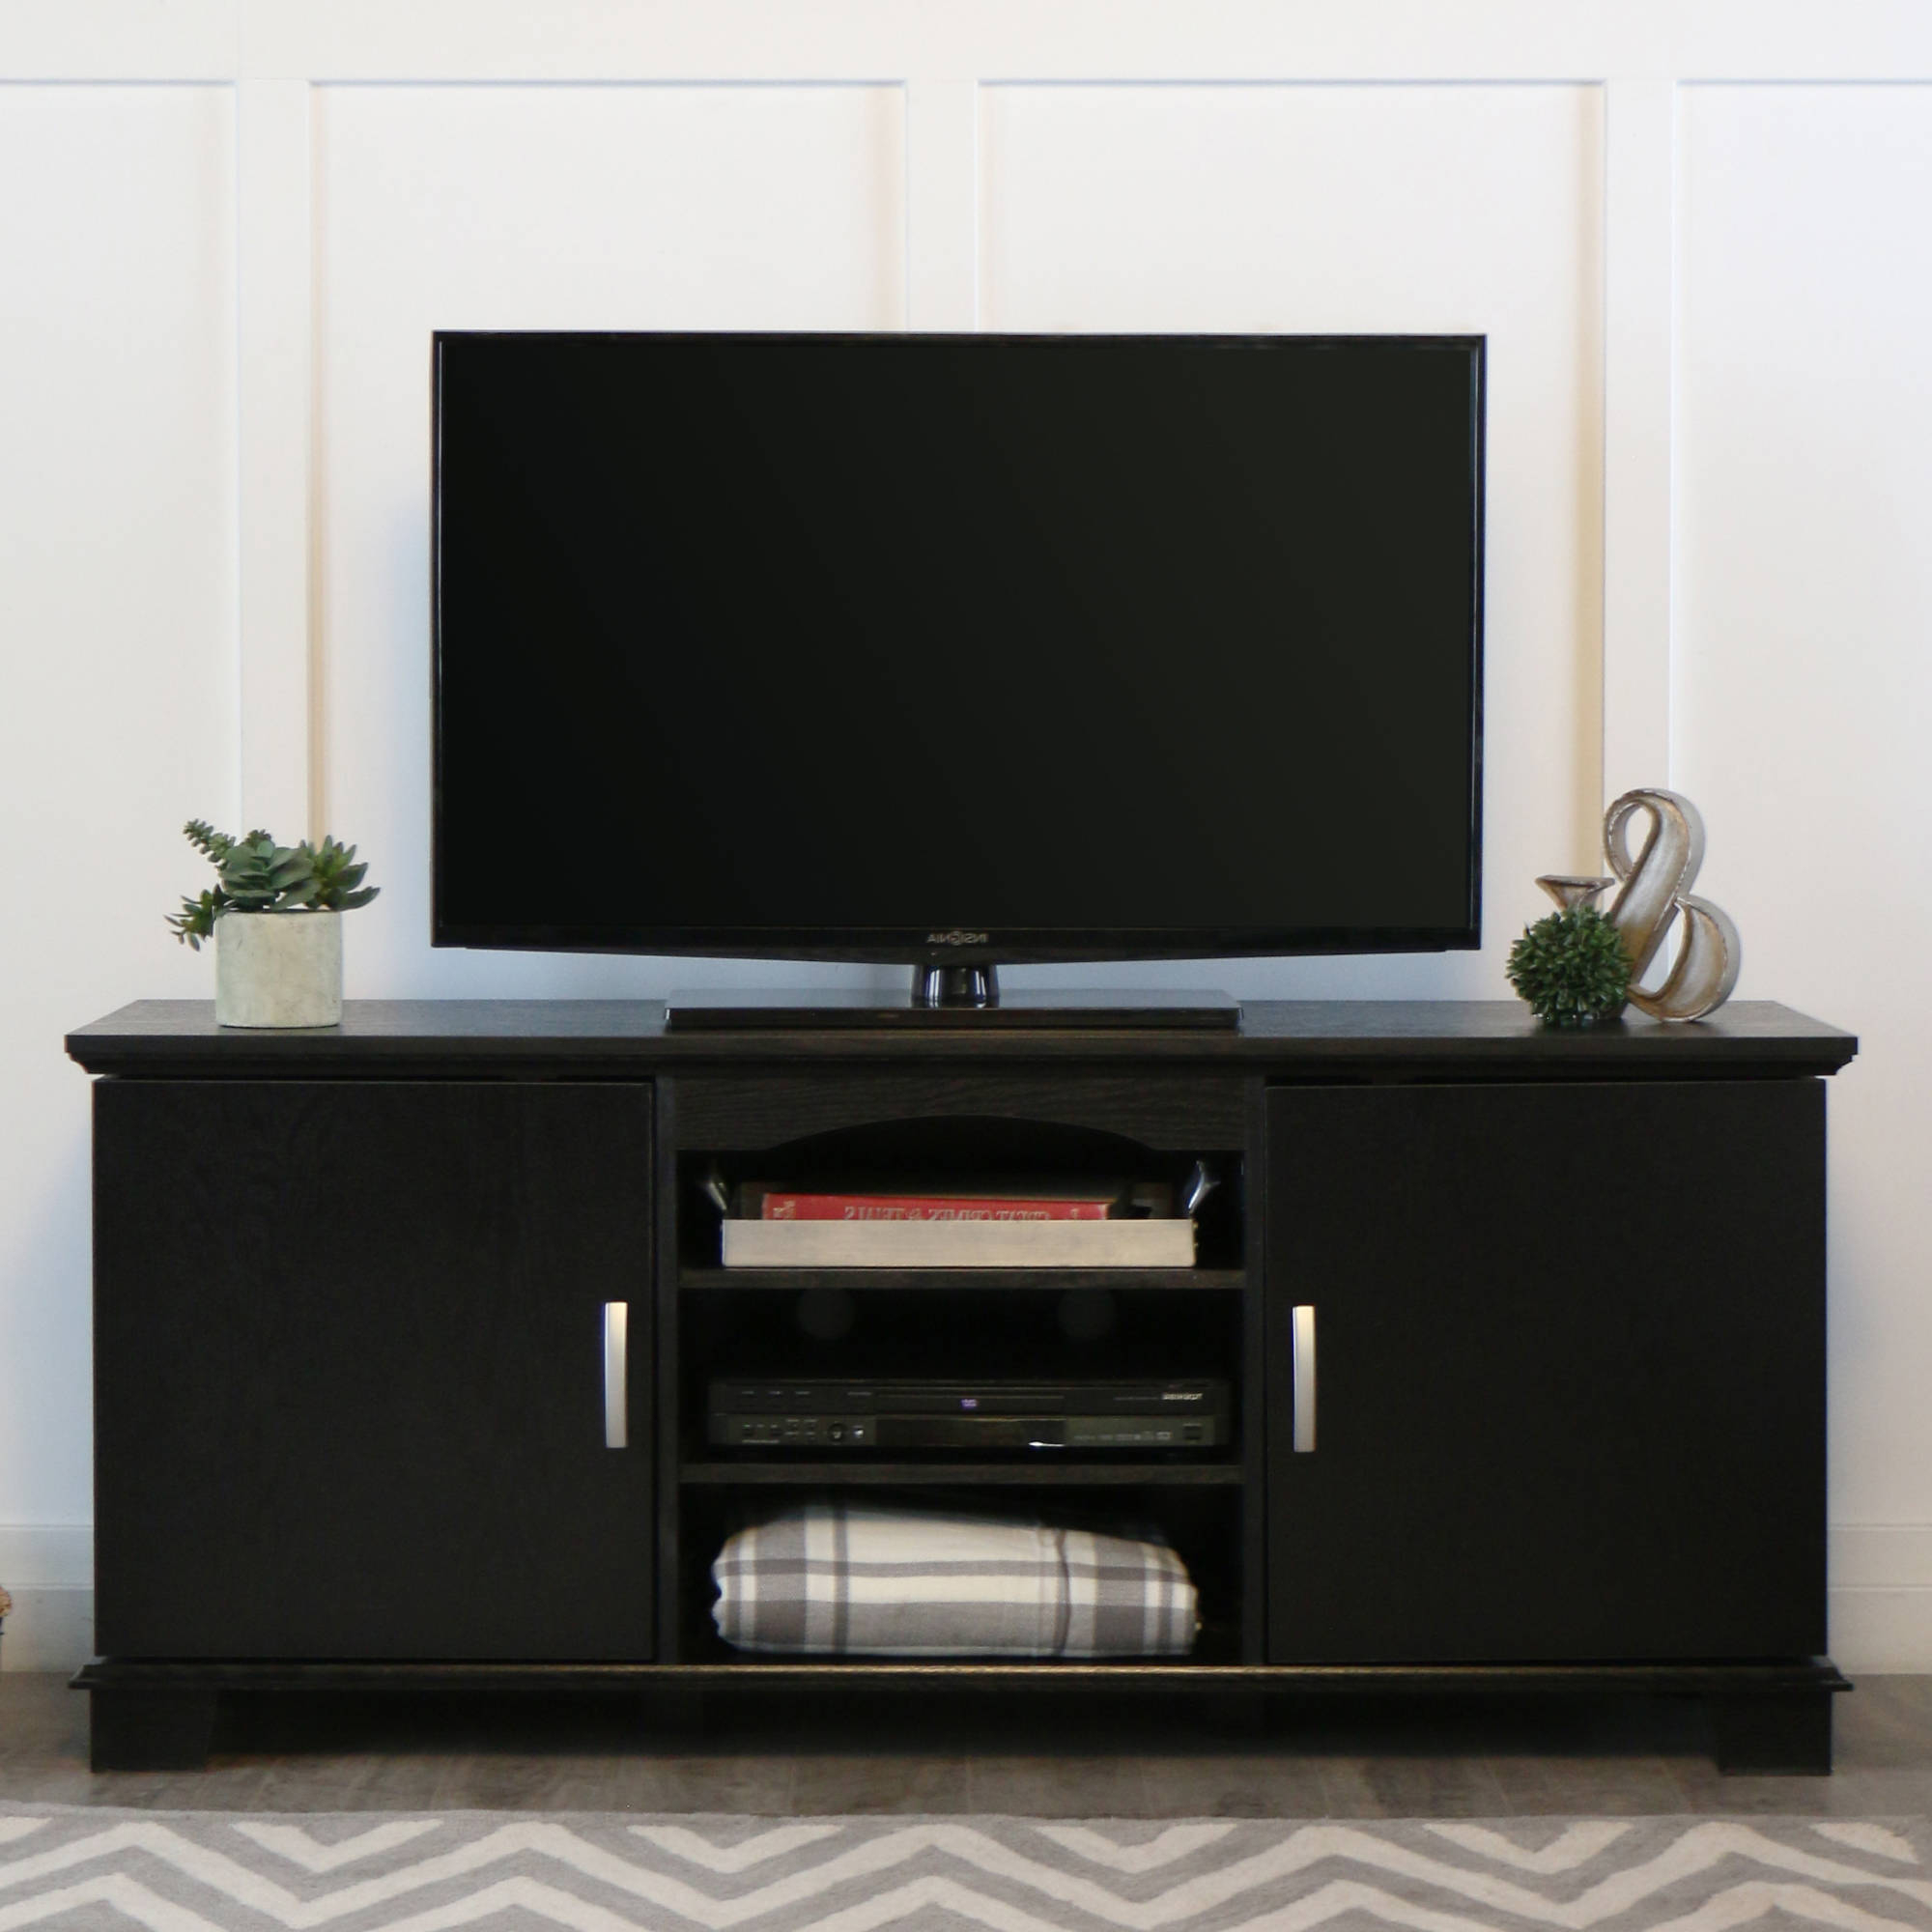 Excellent Espresso Tv Console 29 4845 Jpg V 1525464439 | Gacwar Within Oxford 70 Inch Tv Stands (Gallery 7 of 20)